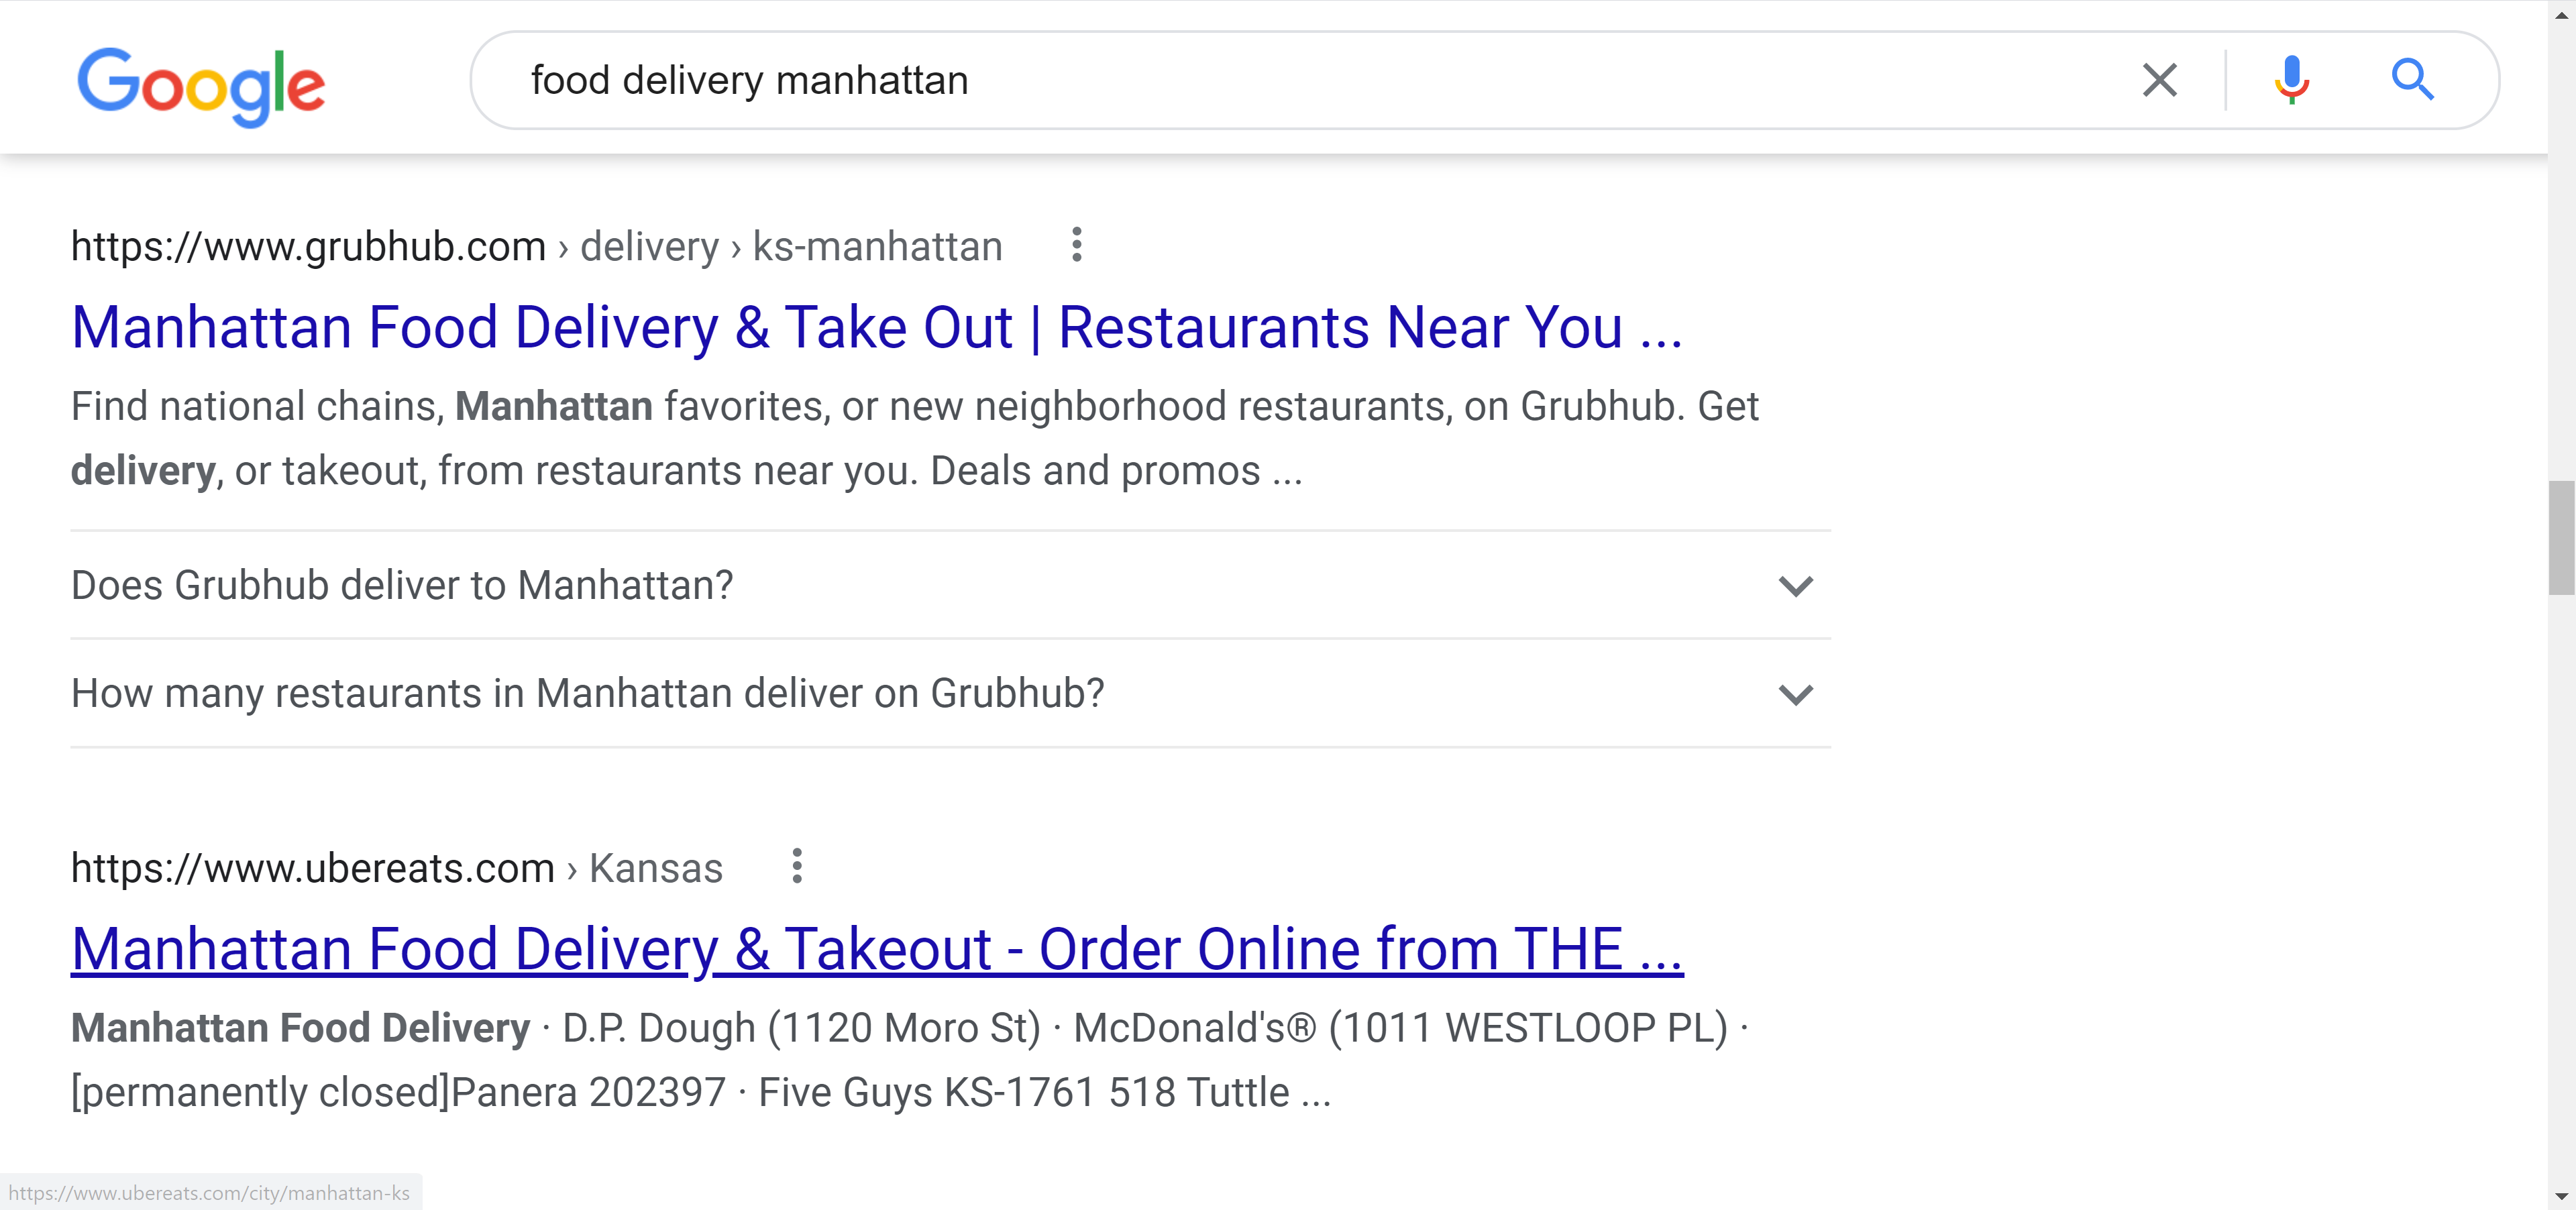 Local SEO keywords in title and description